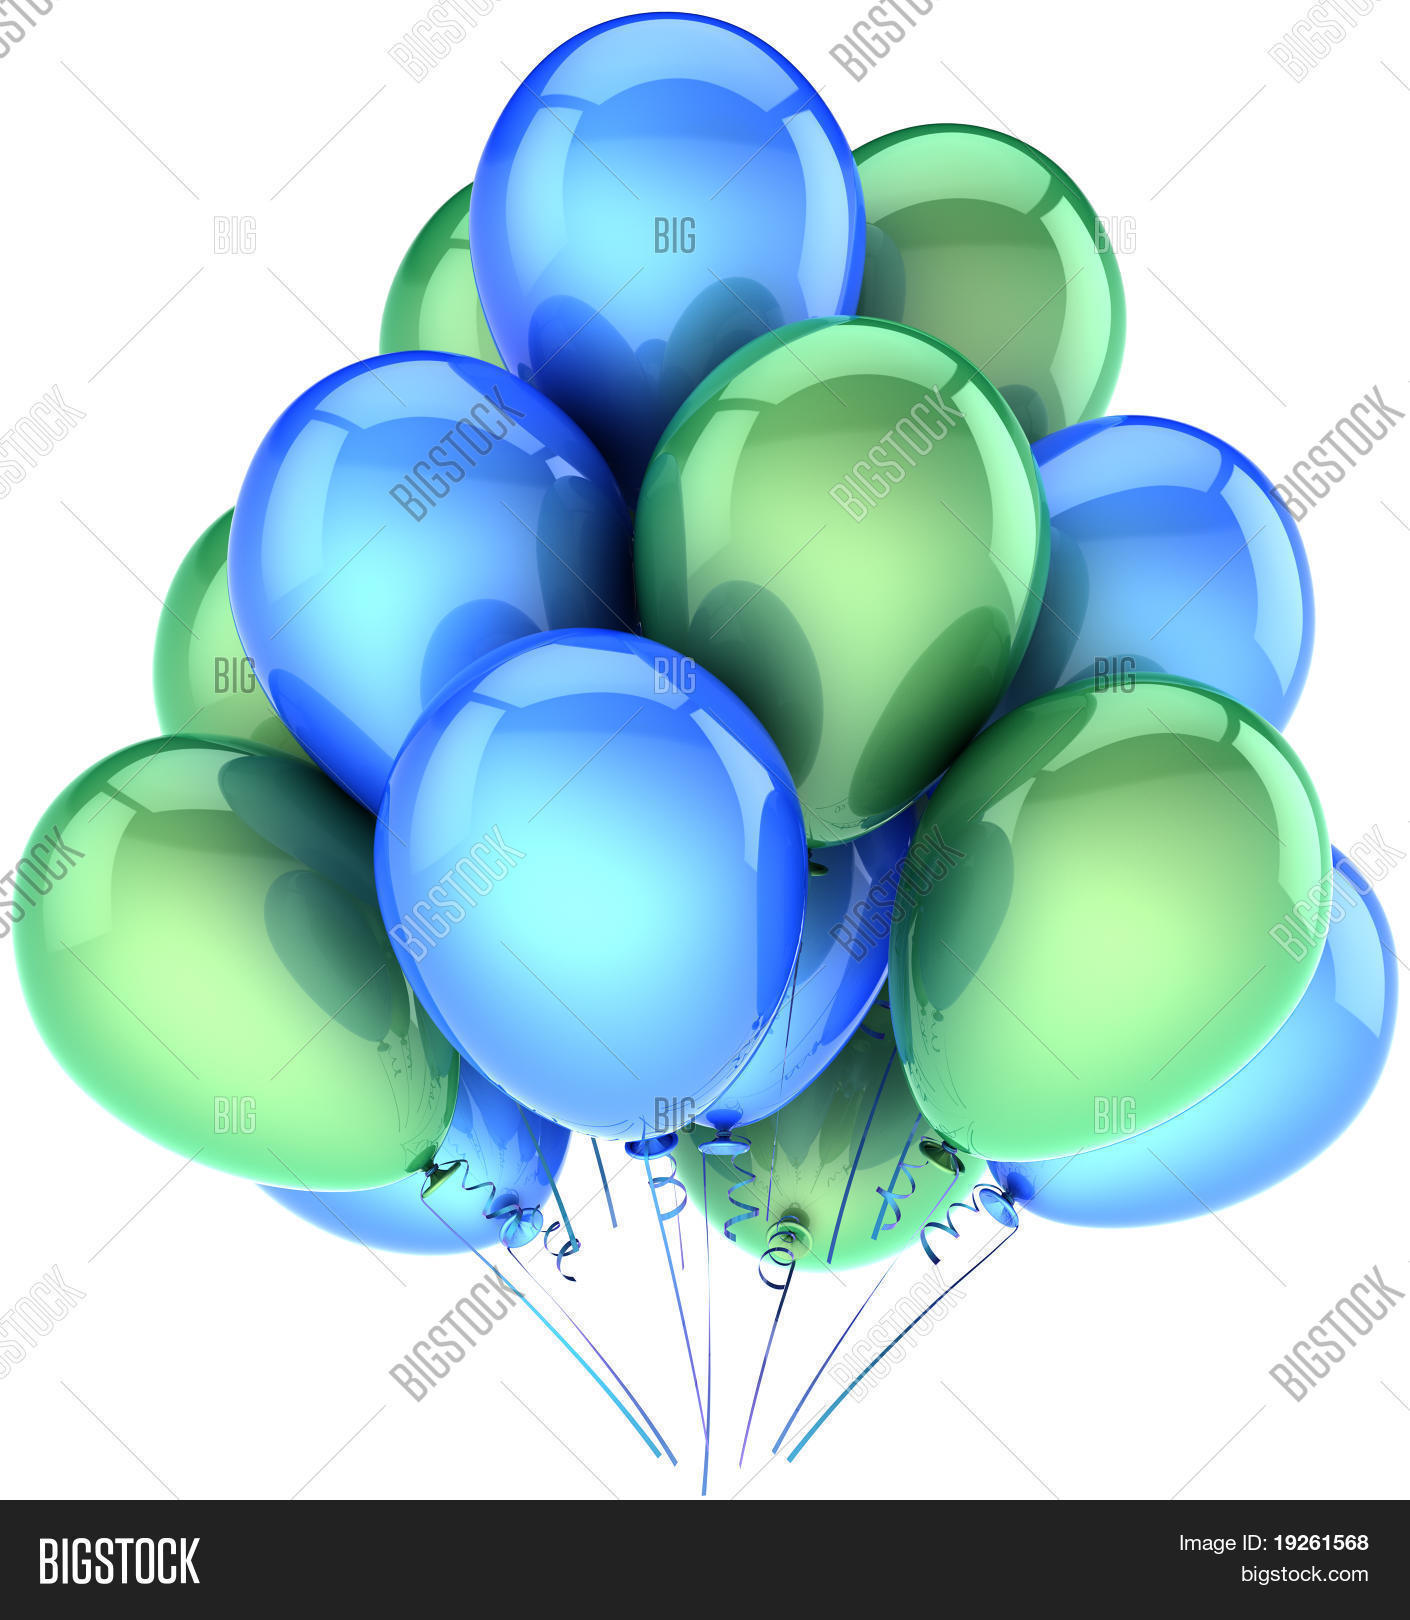 Green and blue balloons - Balloons Party Birthday Decoration Blue Green